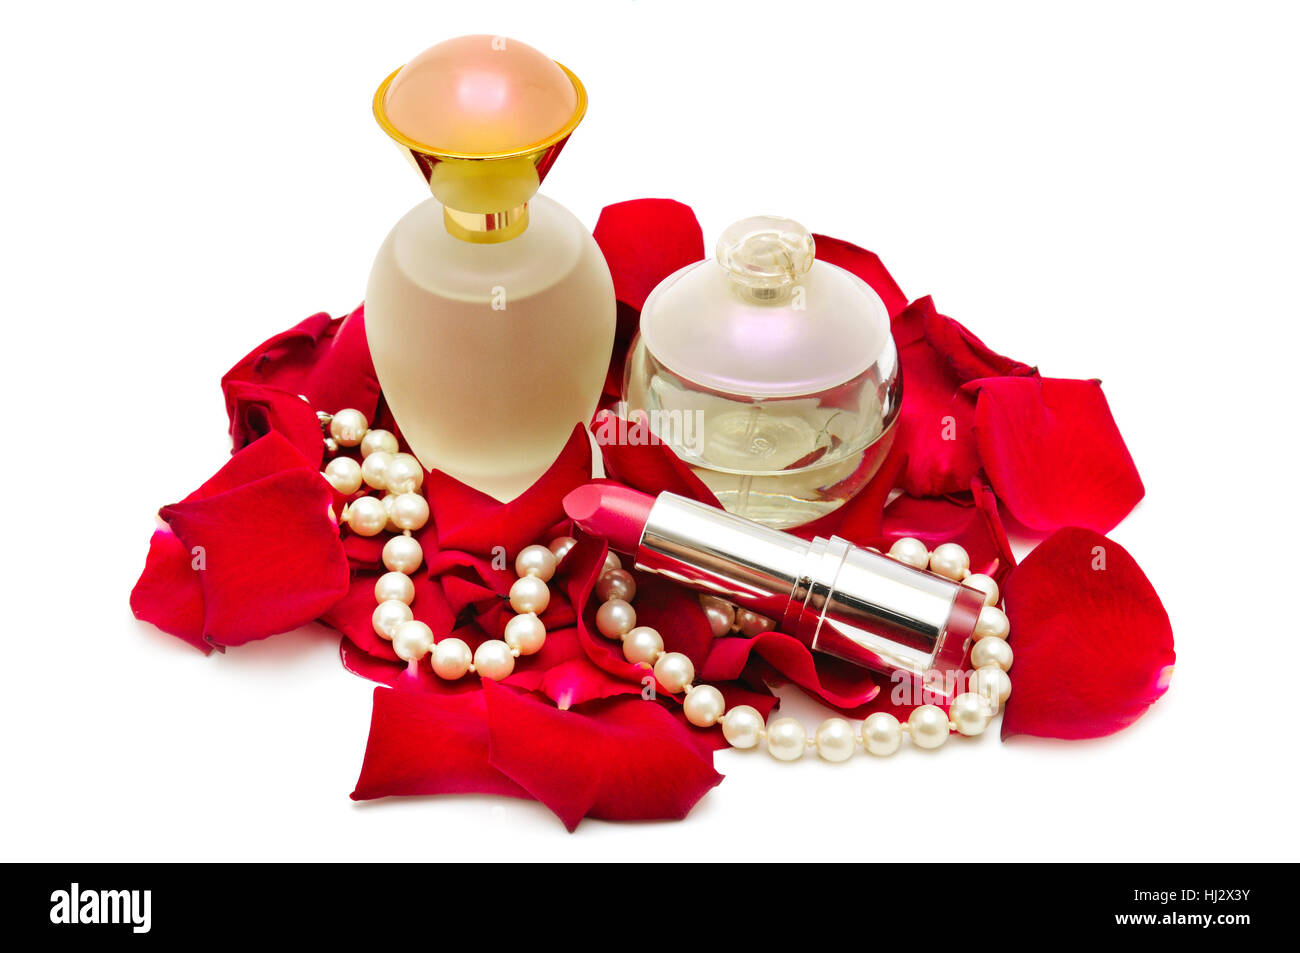 Perfume and pearl necklace in rose petals isolated on white. - Stock Image